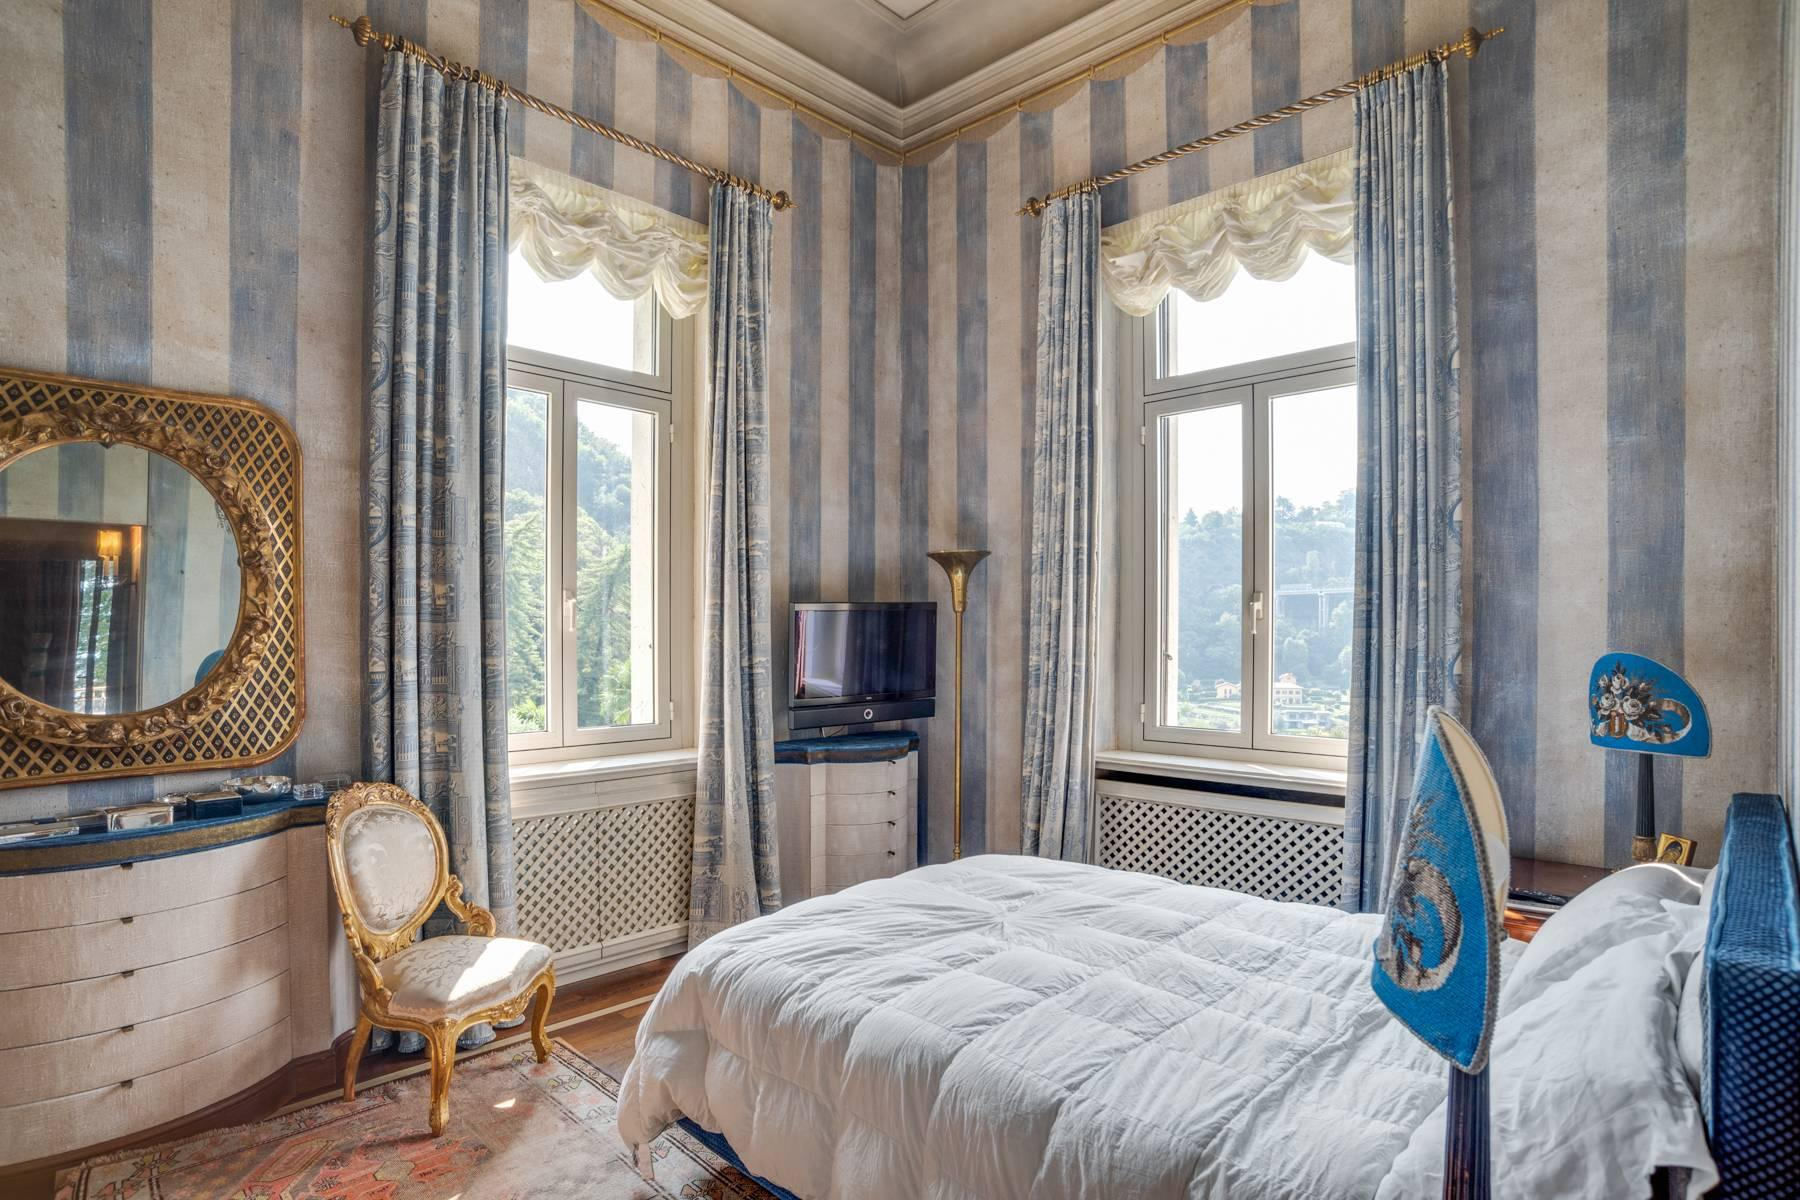 Fascinating apartment in an exclusive villa of the early 1900s - 23